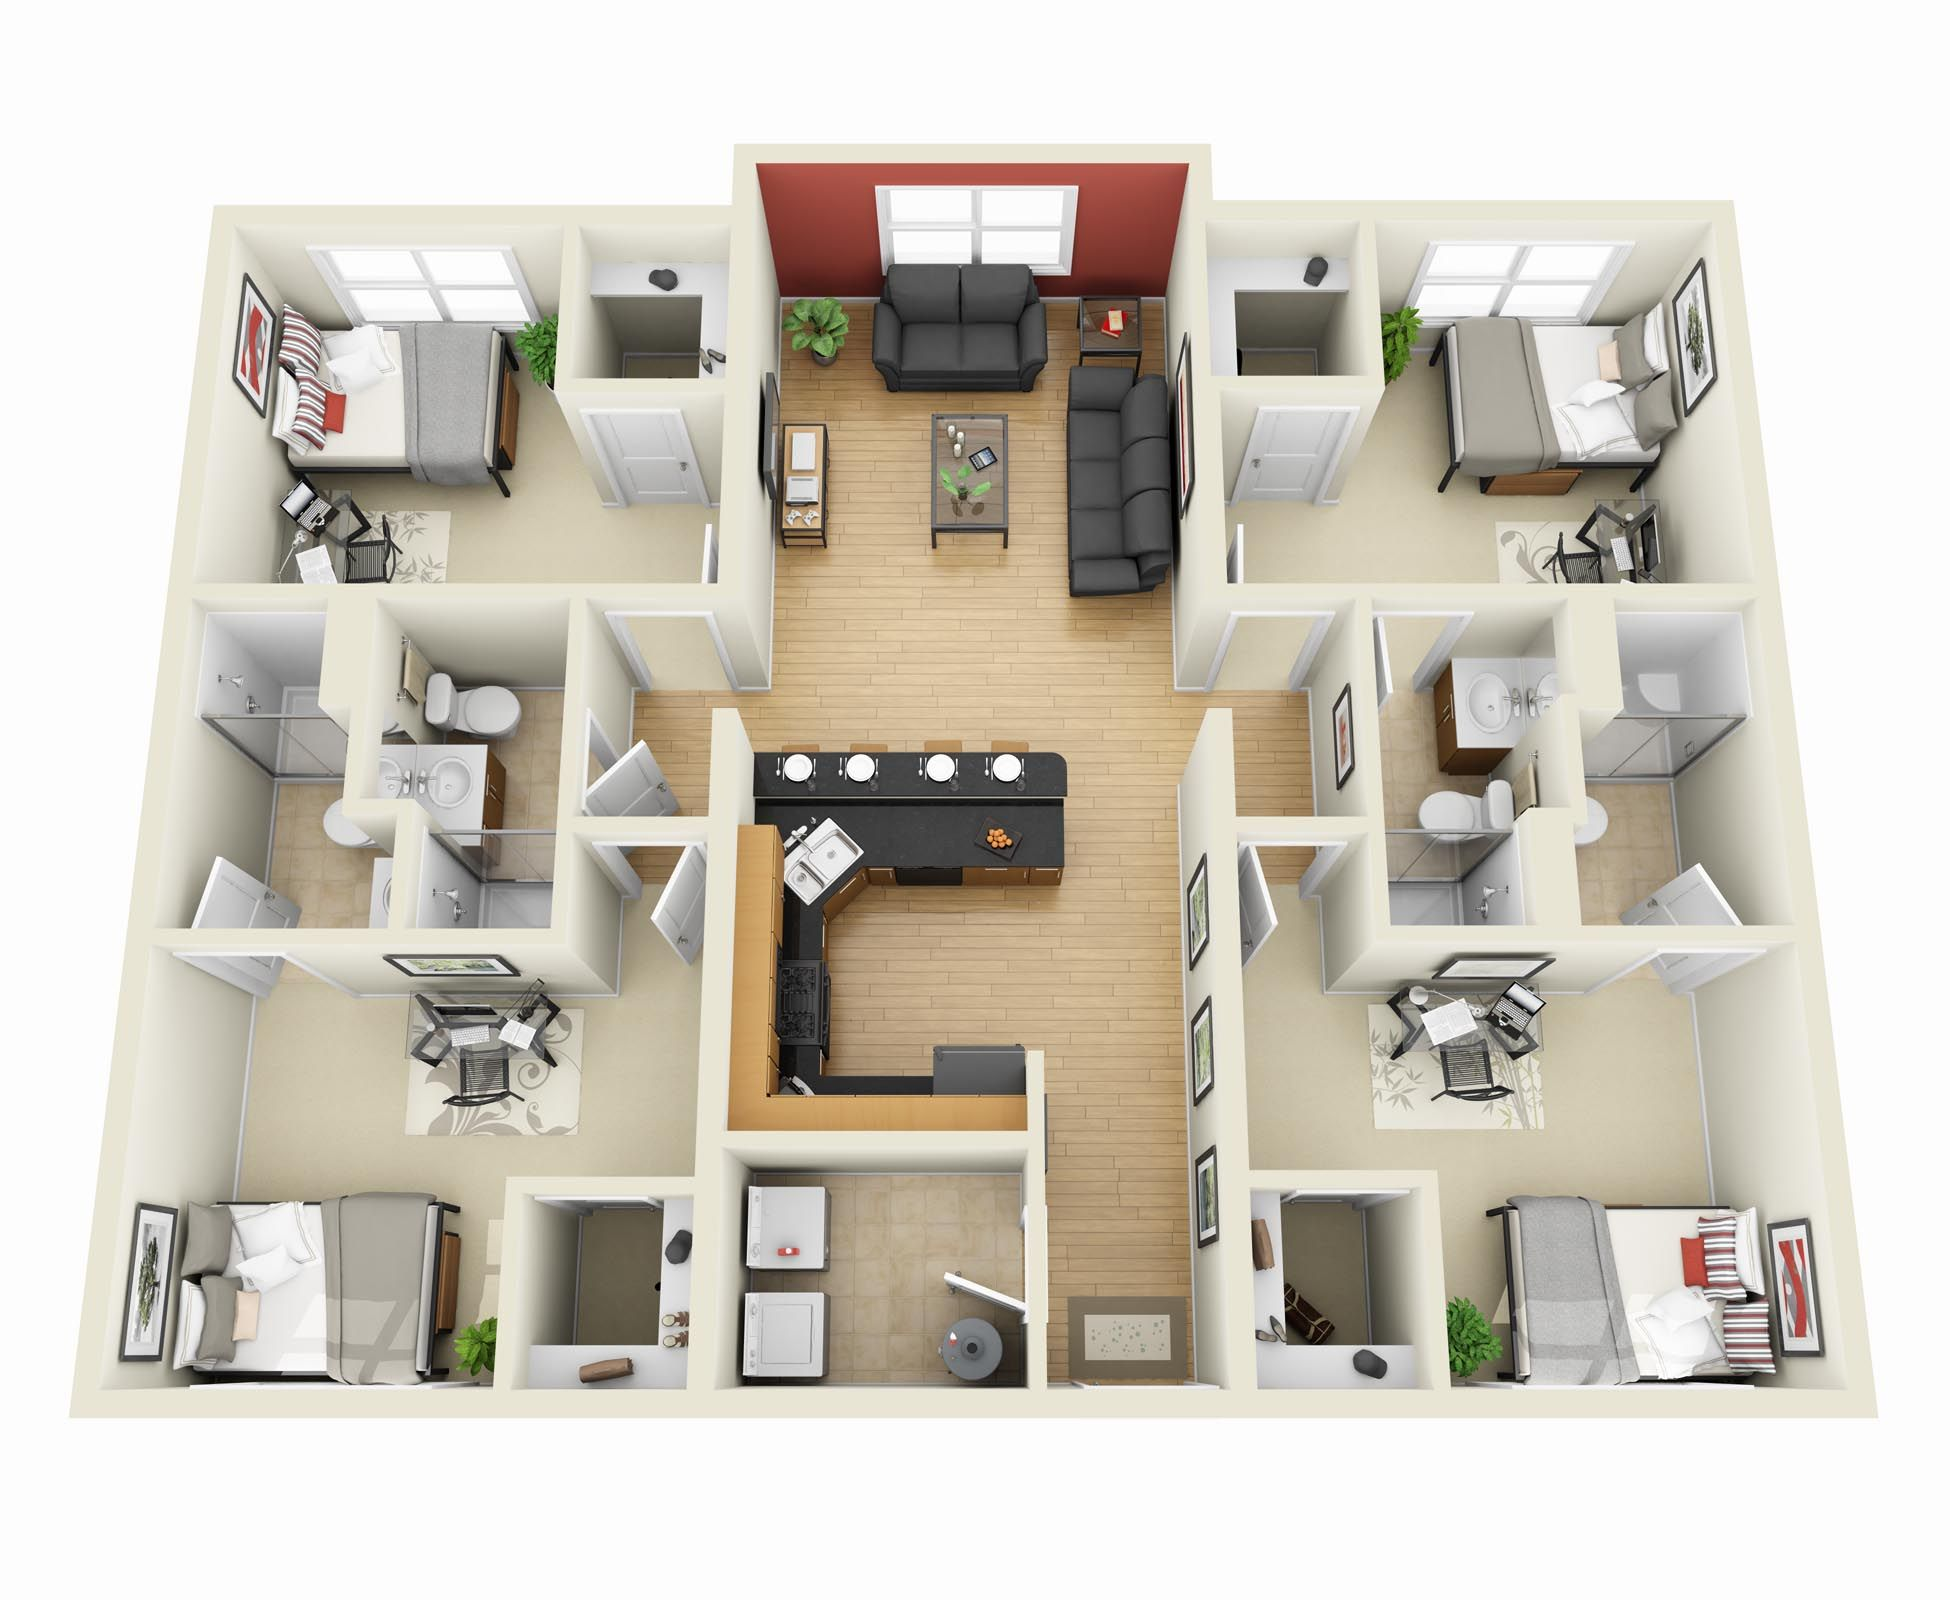 50 Four 4 Bedroom Apartment House Plans 4 Bedroom House Plans